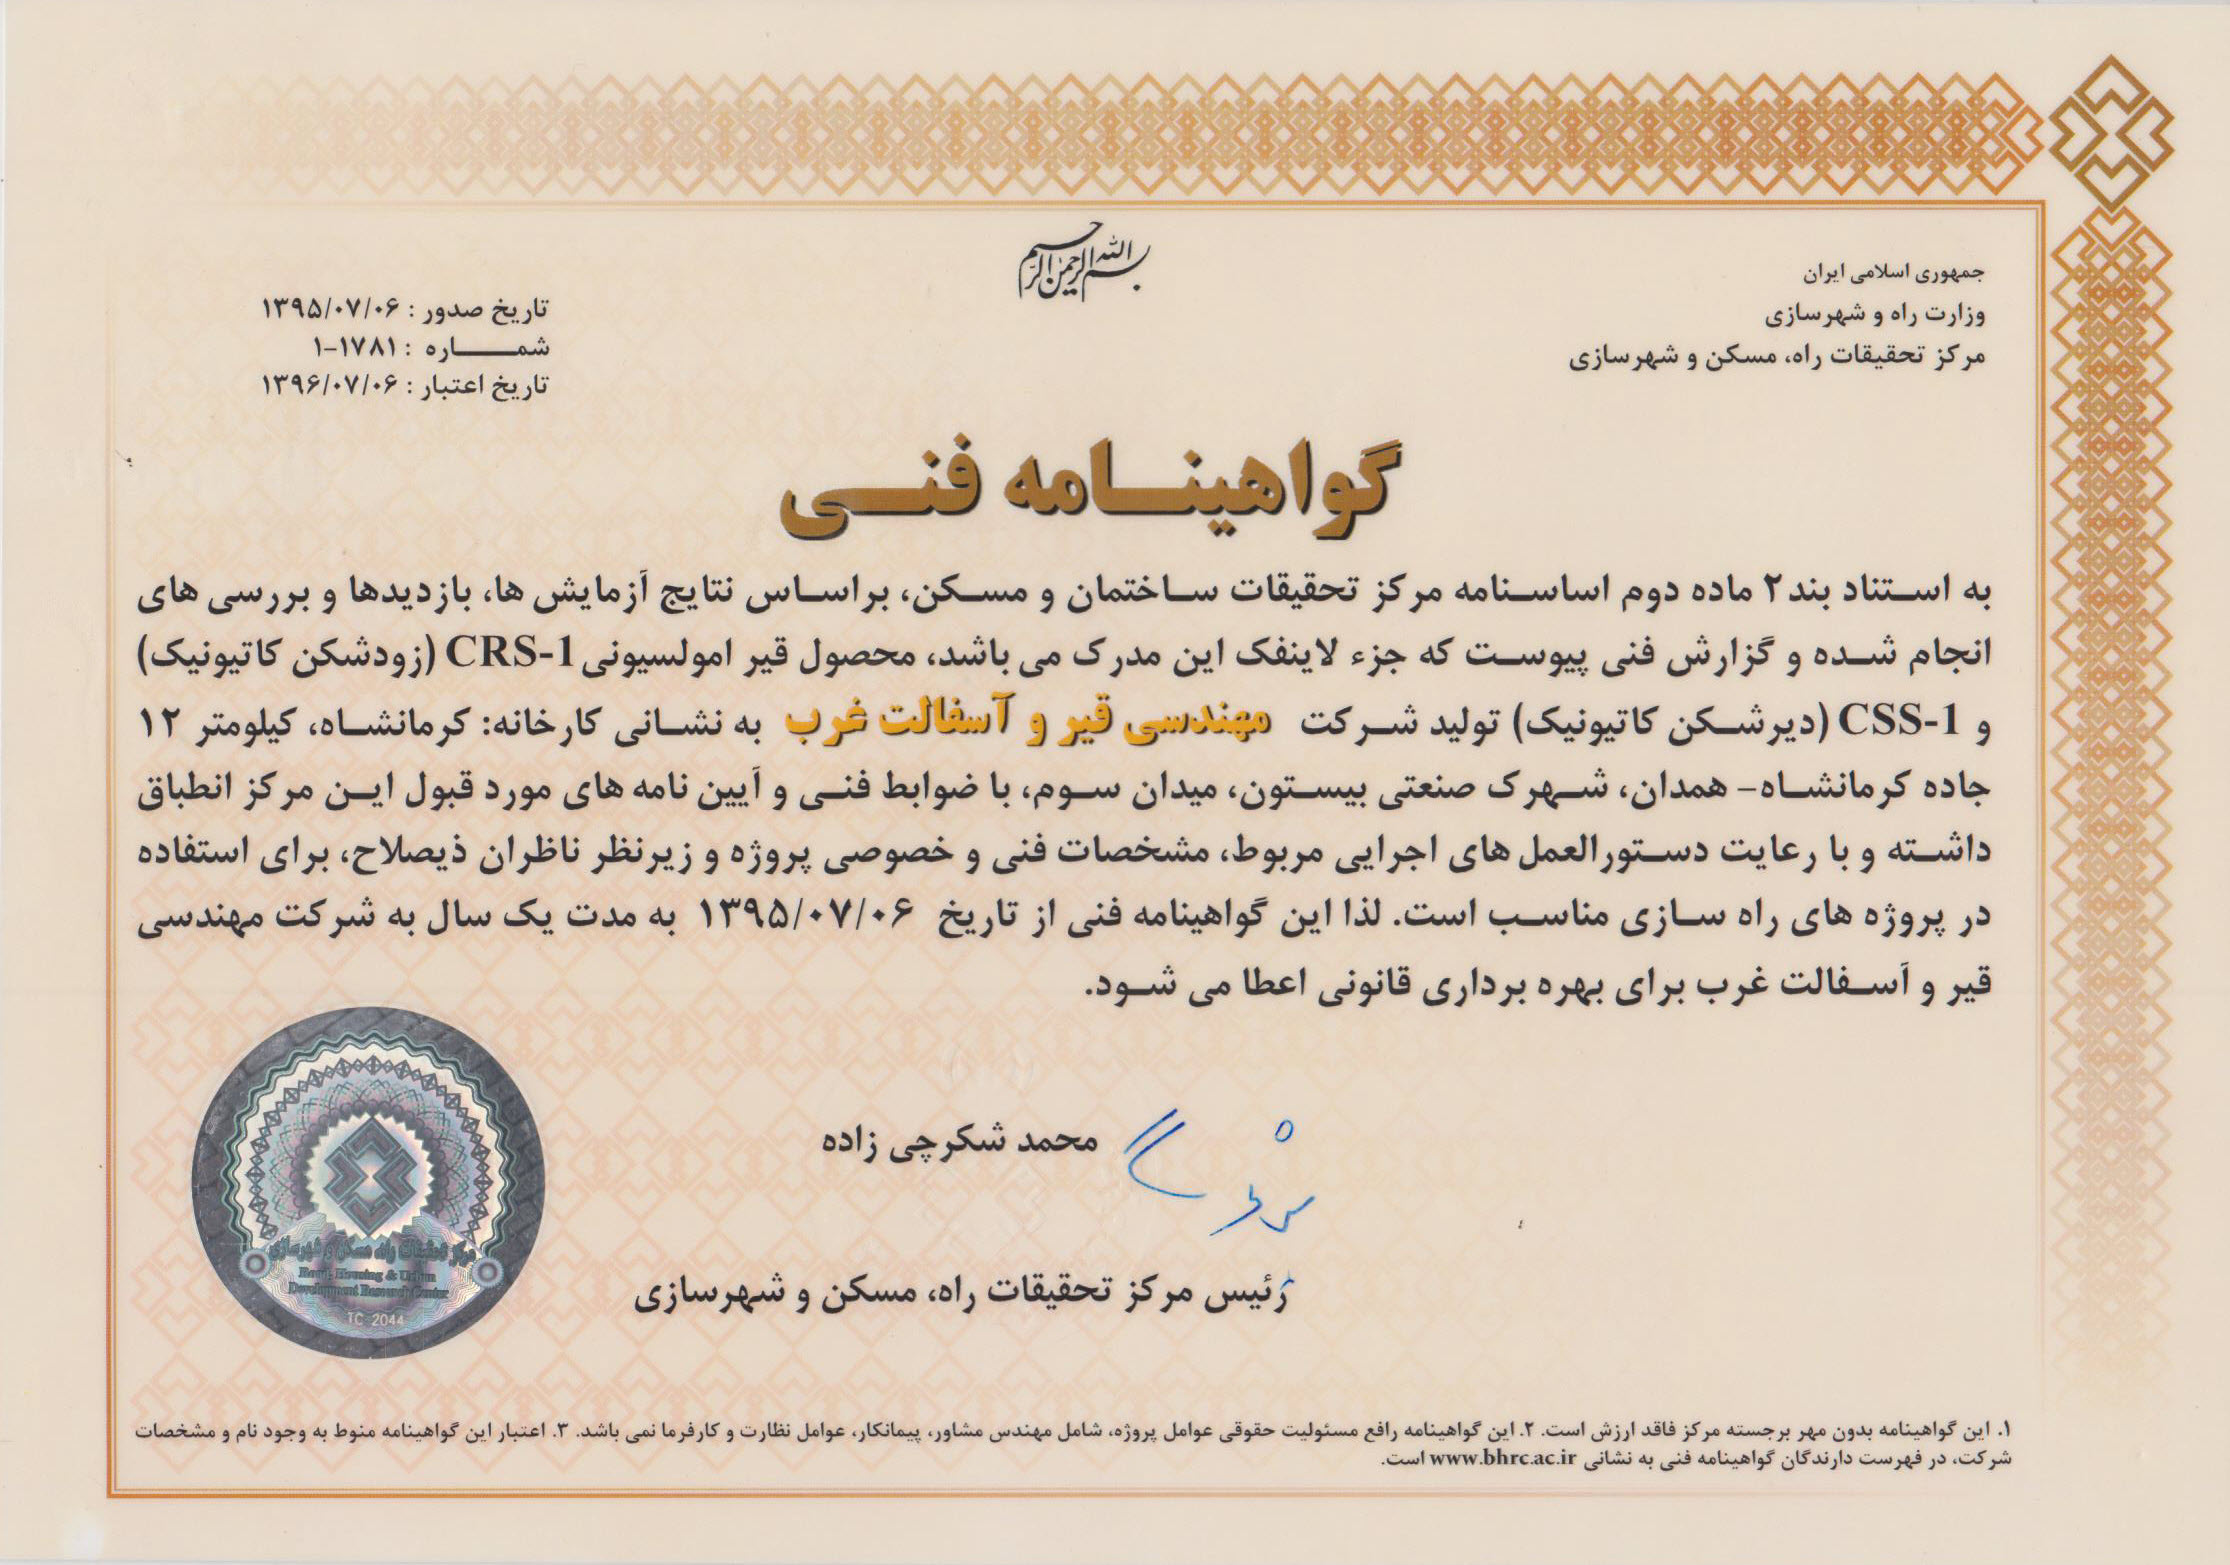 Technical Certificate of Road, Housing and Development Research Center